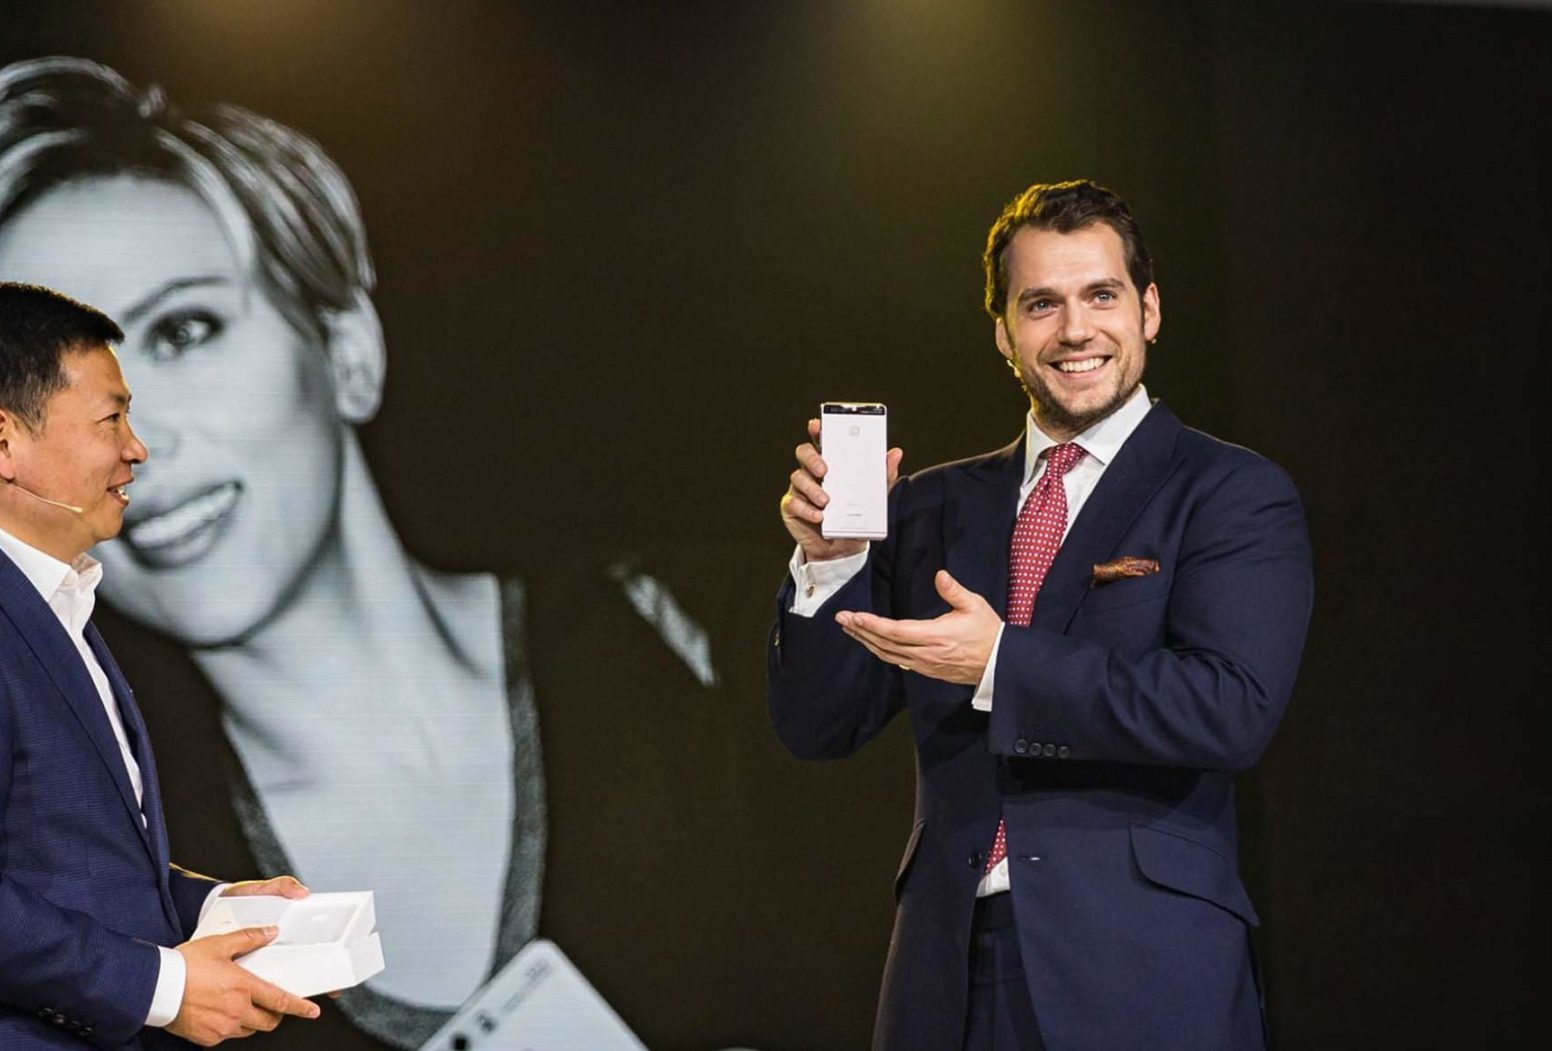 Henry Cavill presents new Huawei P9